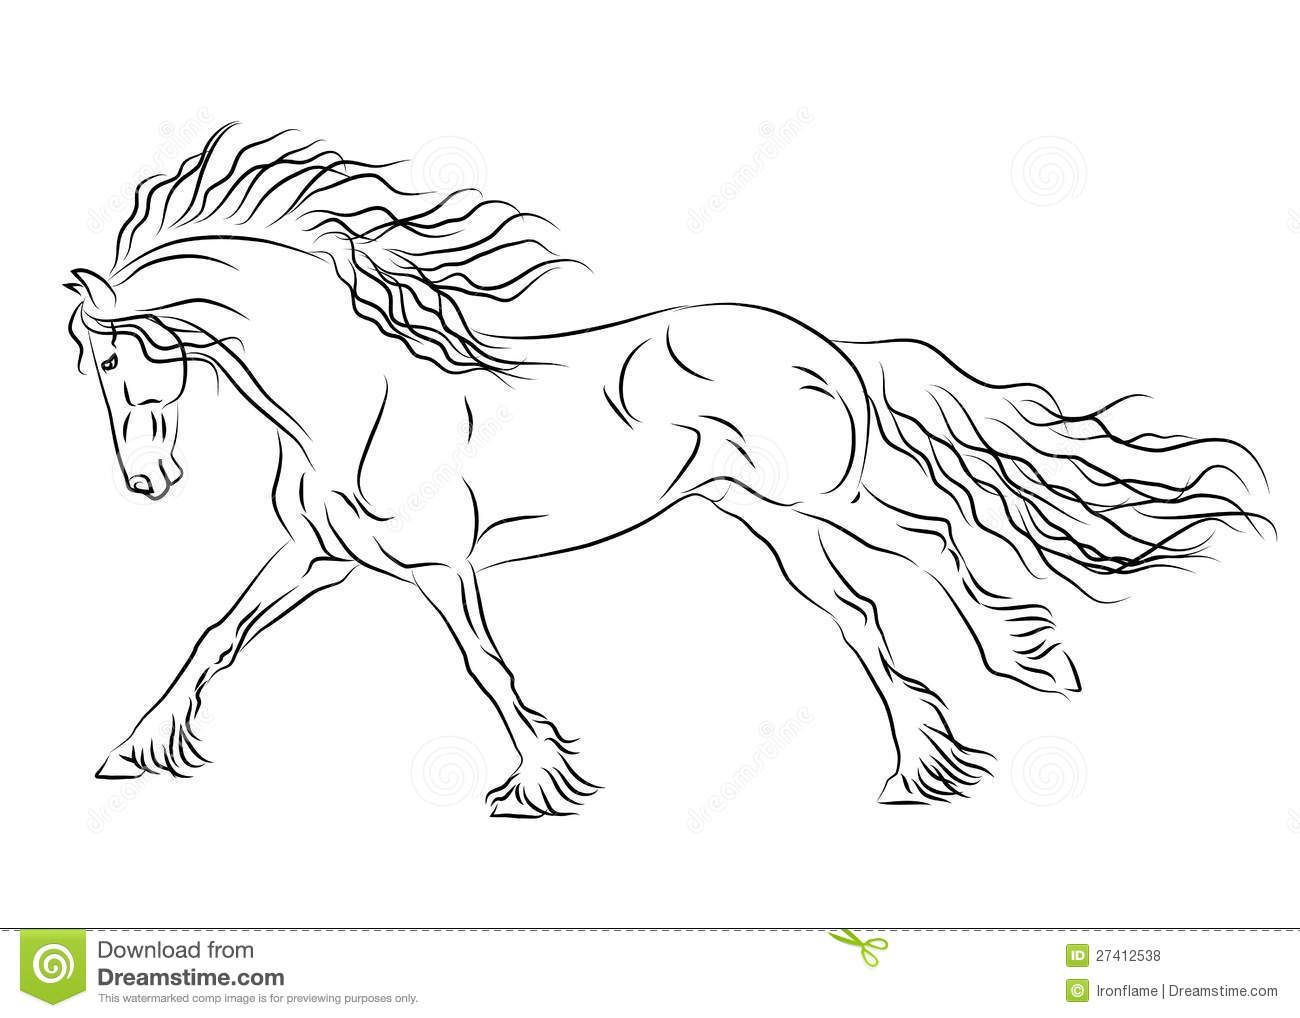 Pin By Carole Demers On Hoby Horse Coloring Pages Horse Sketch Horse Coloring [ 1018 x 1300 Pixel ]